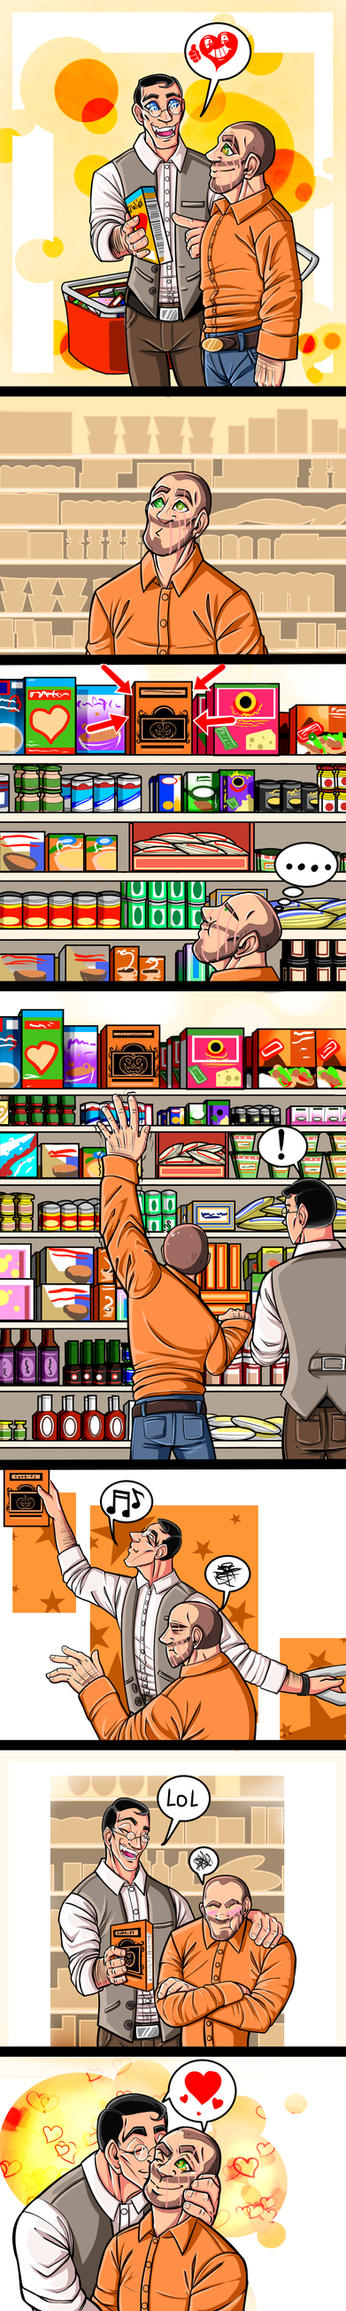 TF2 Day 8: Shopping by DeathRage22